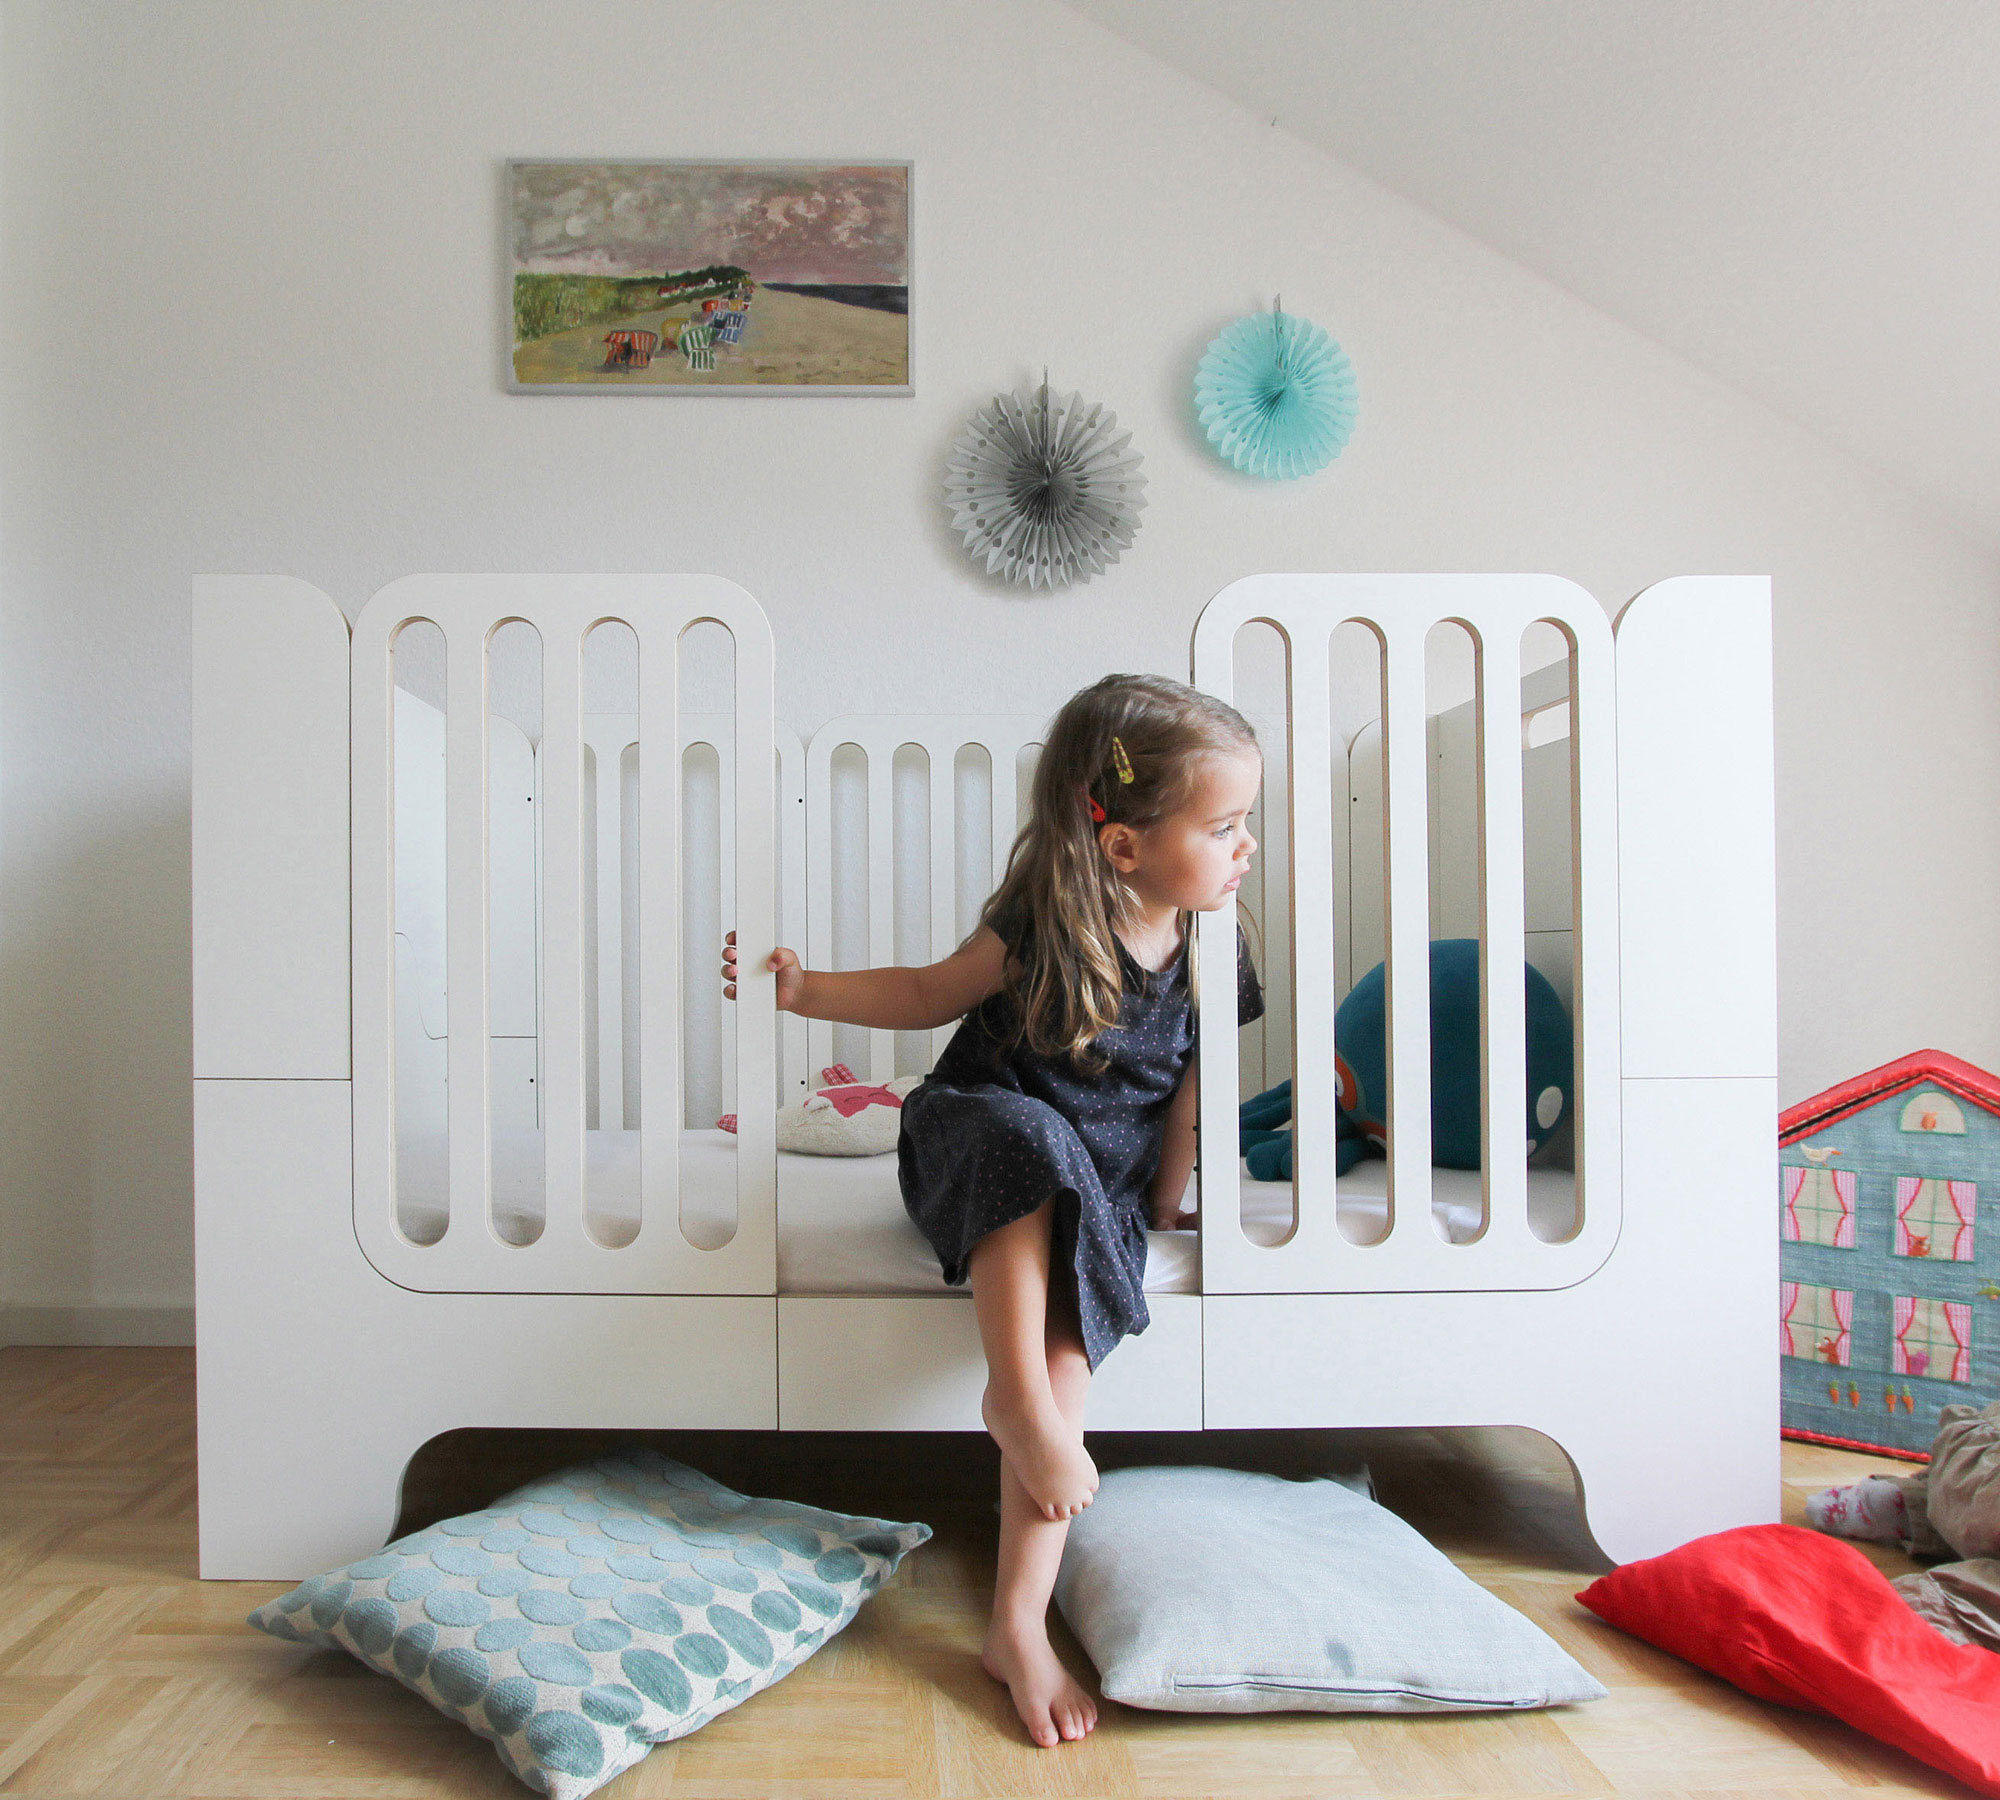 kindgerechtes design kinderbetten f r kinder empfohlen von afilii berlin mit kind. Black Bedroom Furniture Sets. Home Design Ideas